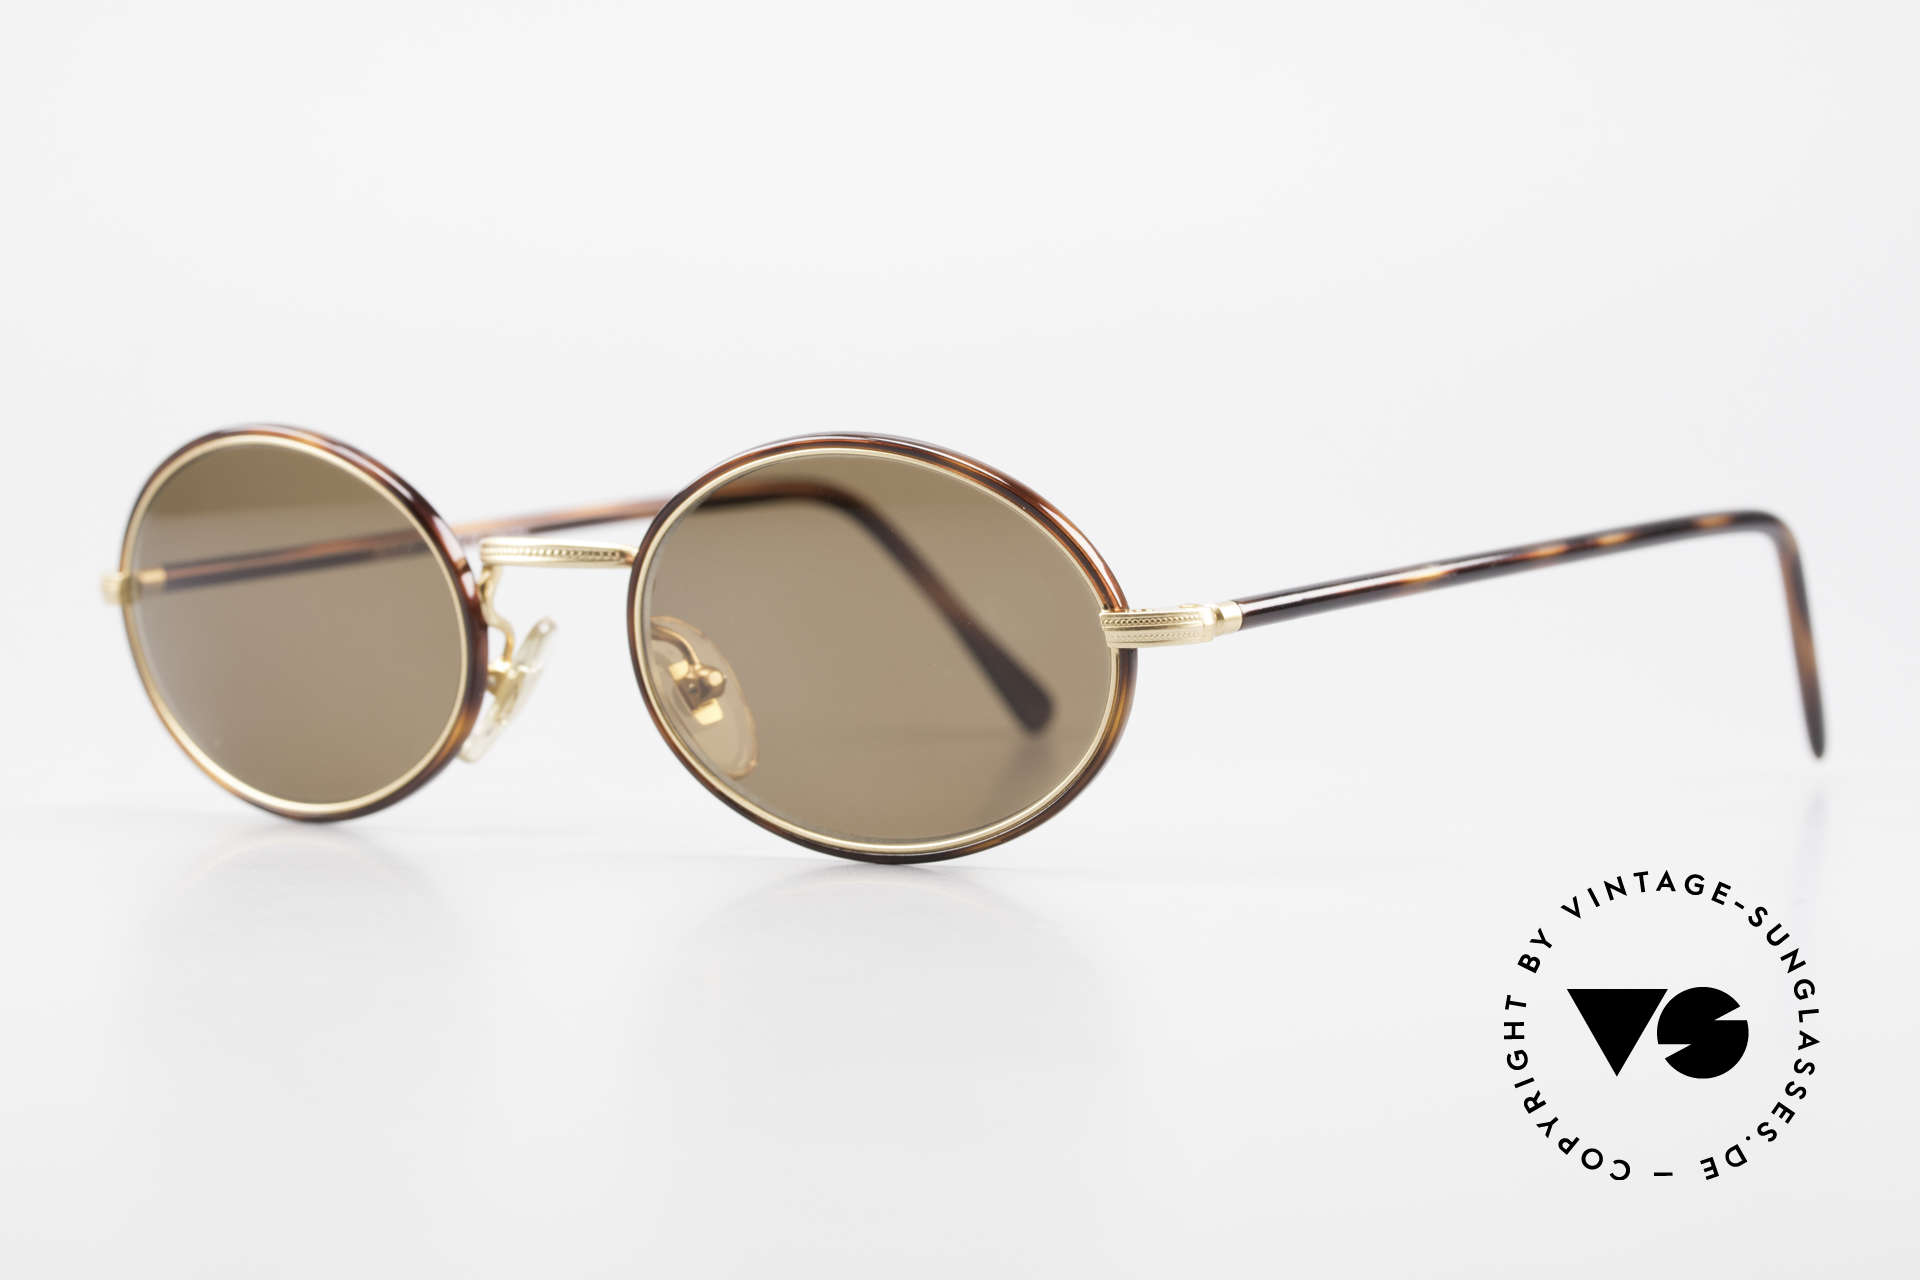 Cutler And Gross 0350 Oval Vintage Sunglasses 90's, stylish & distinctive in absence of an ostentatious logo, Made for Men and Women